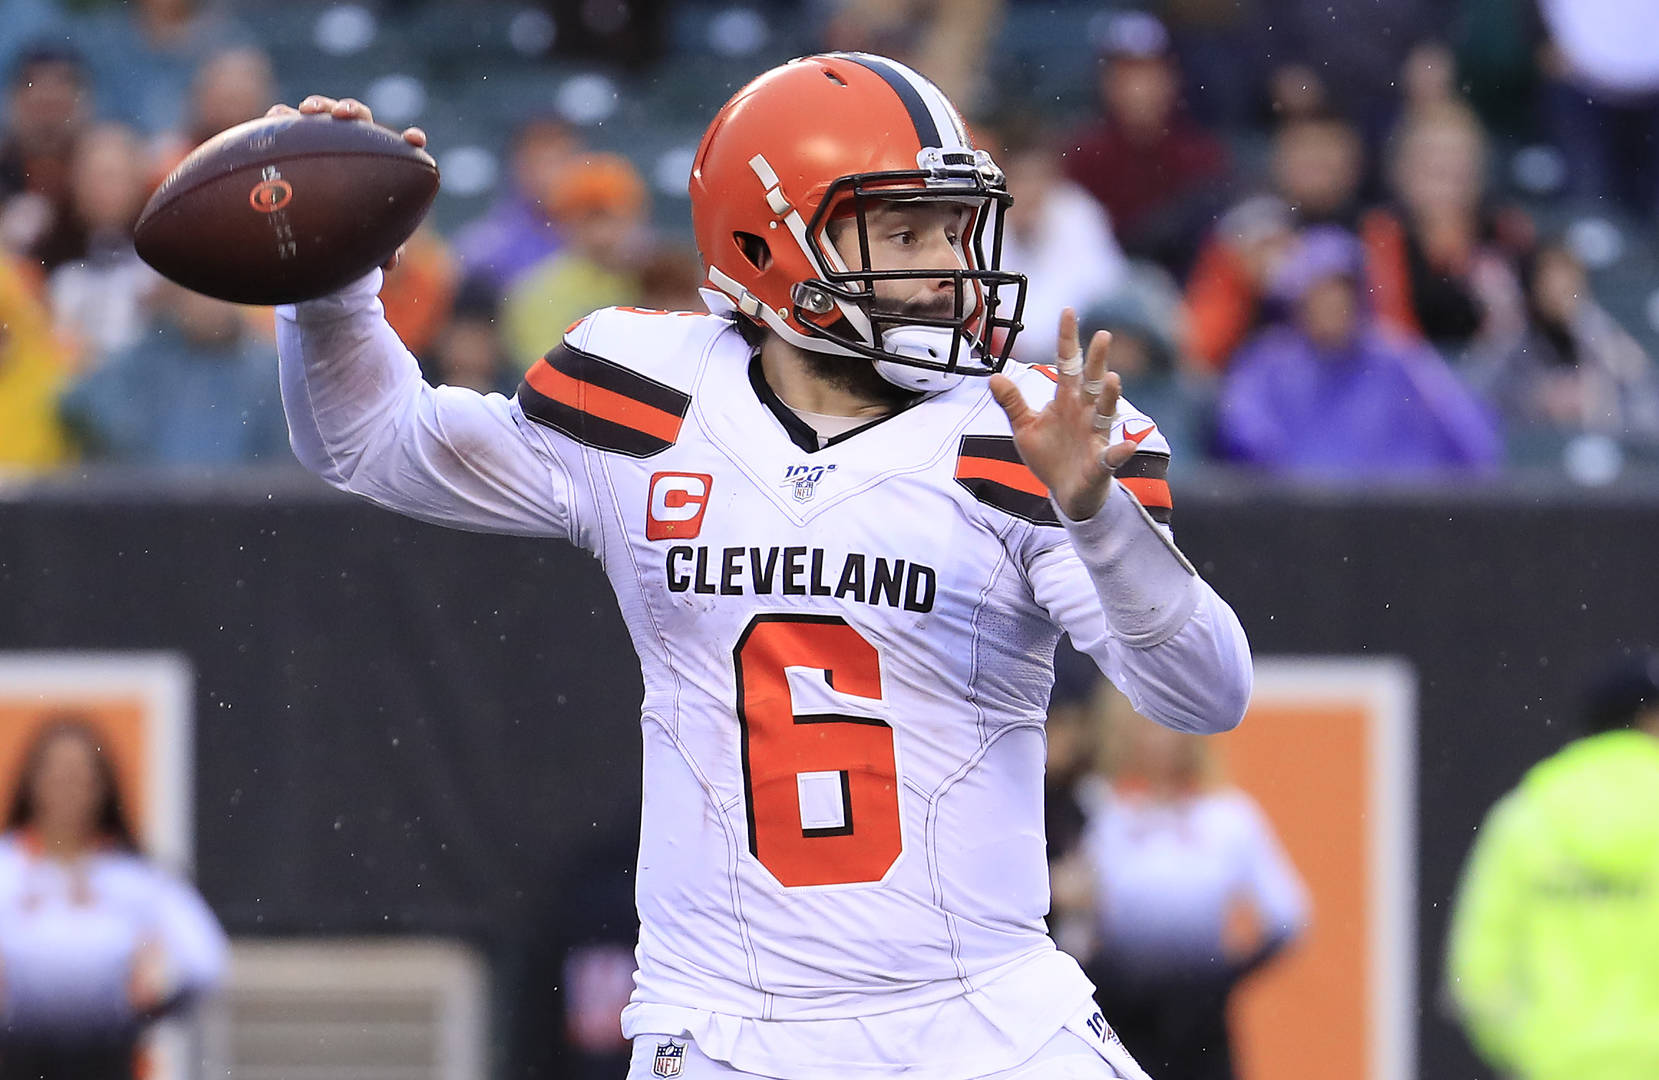 Browns' Baker Mayfield 'absolutely' will kneel during national anthem